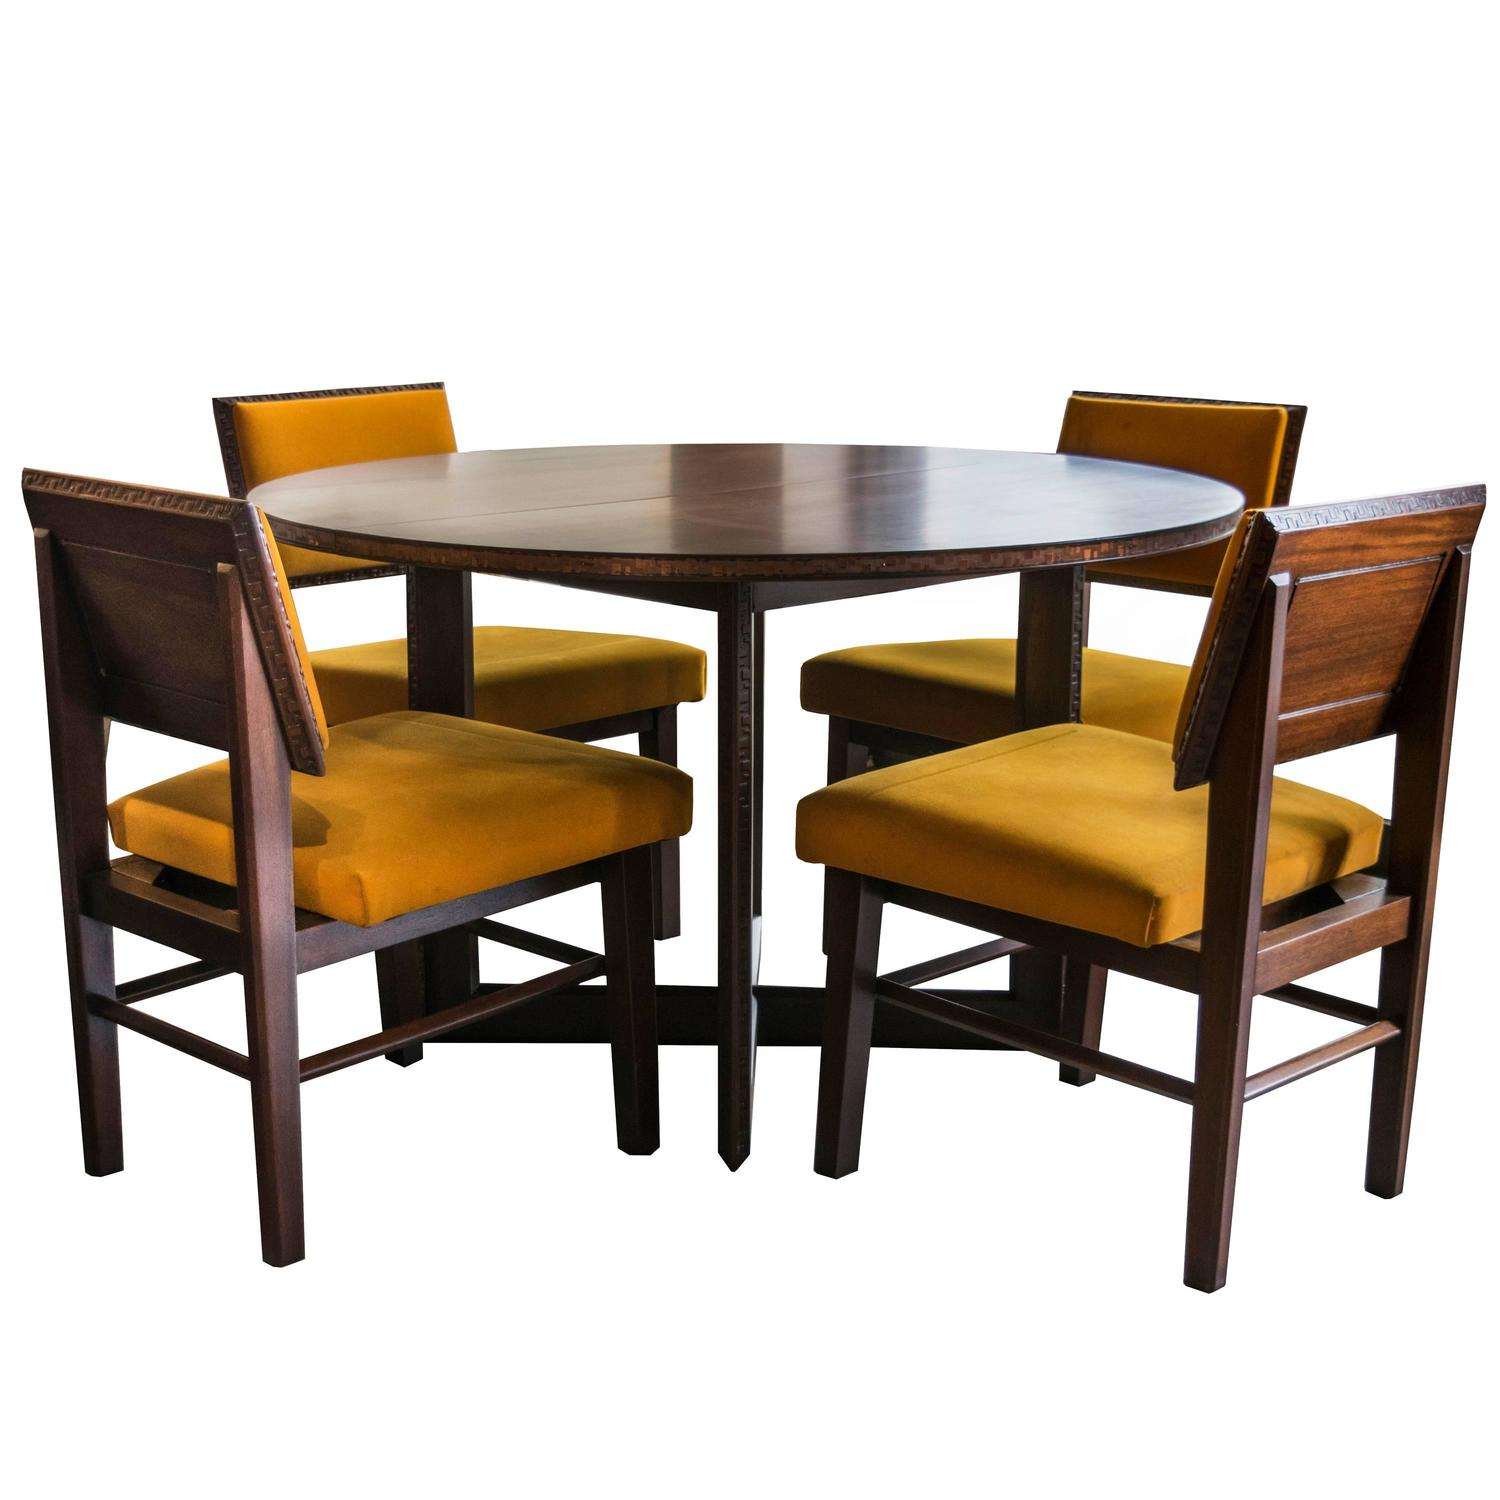 frank lloyd wright chairs wedding king and queen for sale henredon dining table with